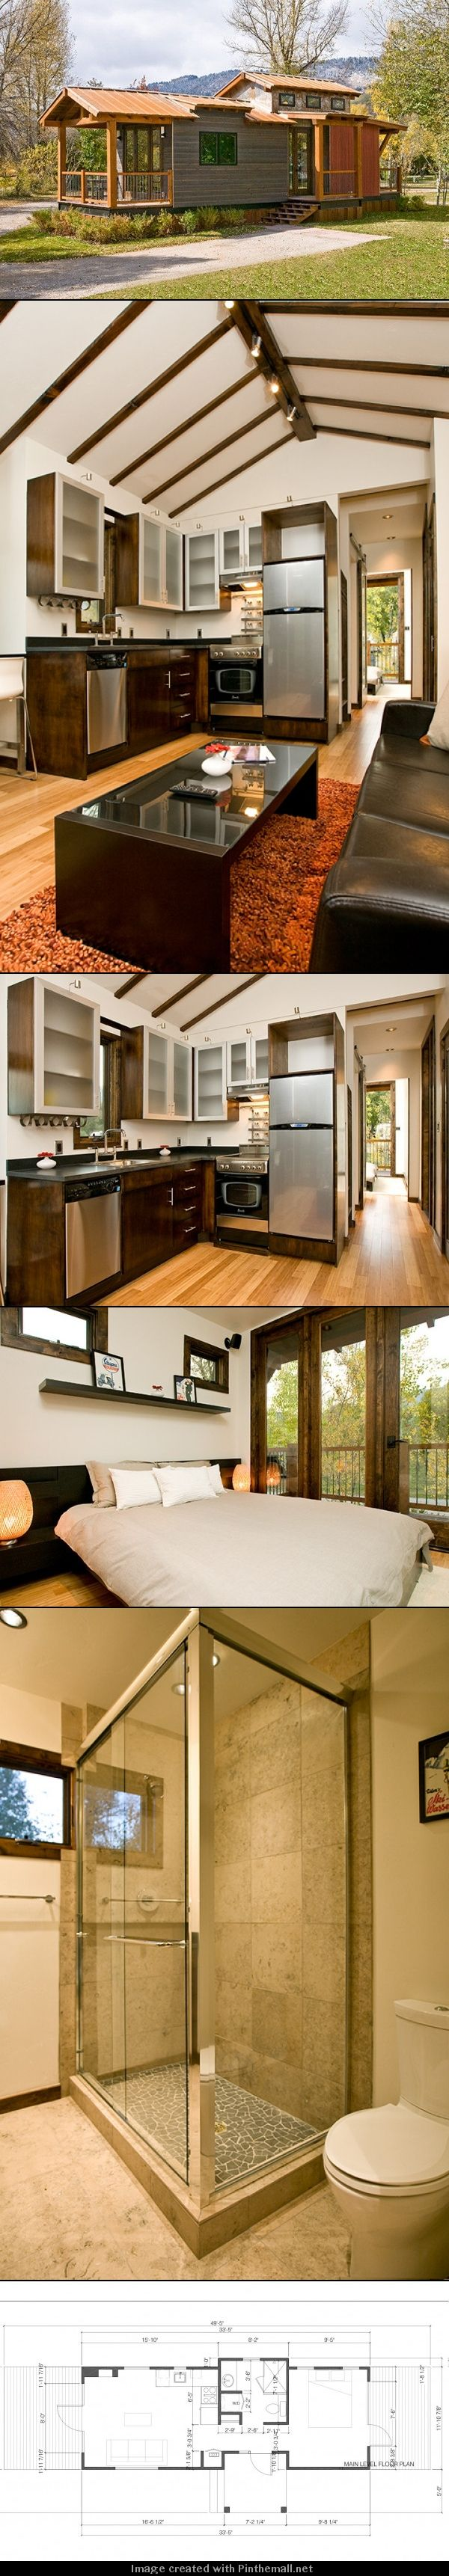 "Stunning tiny house, movable if need be. Jamie Mackay designed and built a mountain modern ""Park Model RV"" at his campground in Jackson Hole, Wyoming. The ""Park Model"" is built out of SIP panels and SIP roof system, 4″ walls and 6″ roof, keeping heating and cooling costs down."